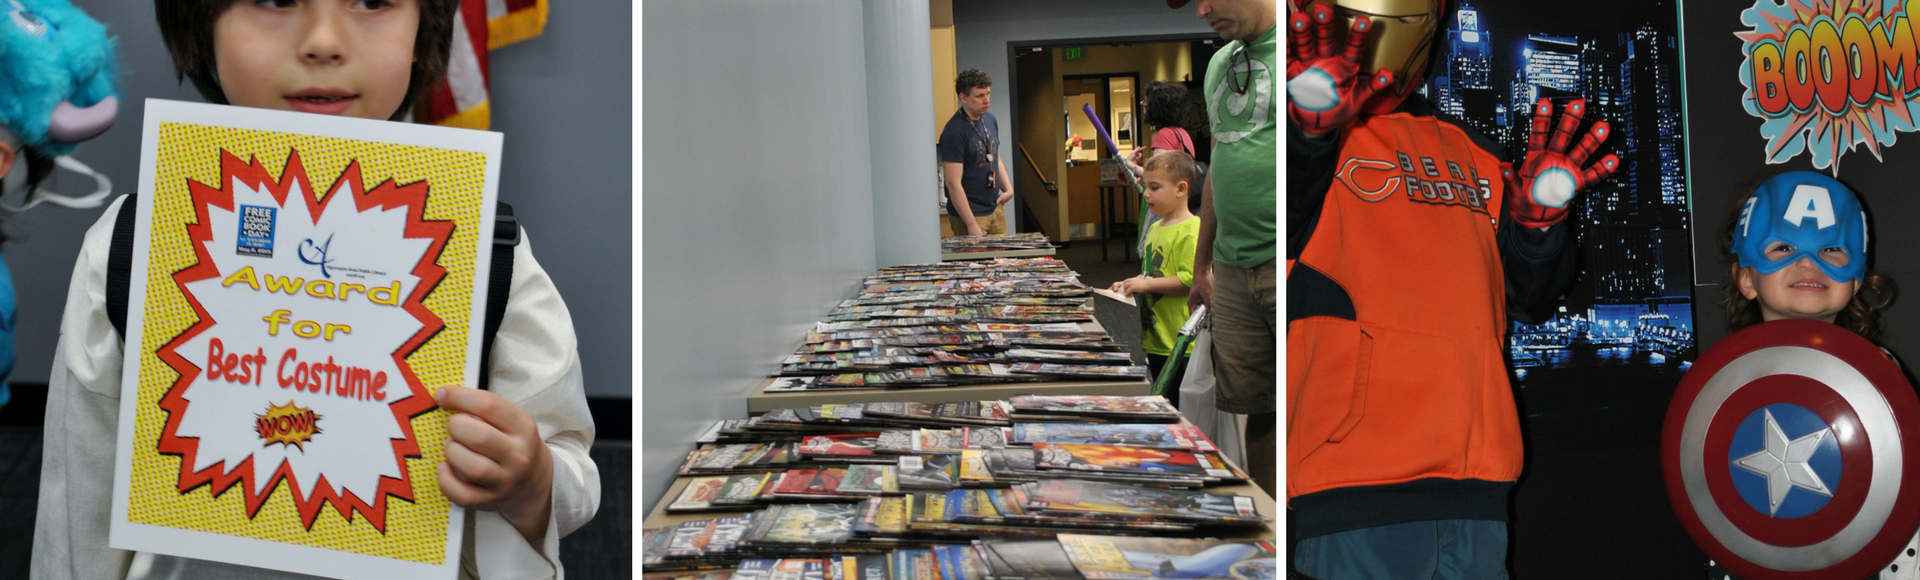 May 6 is Free Comic Book Day